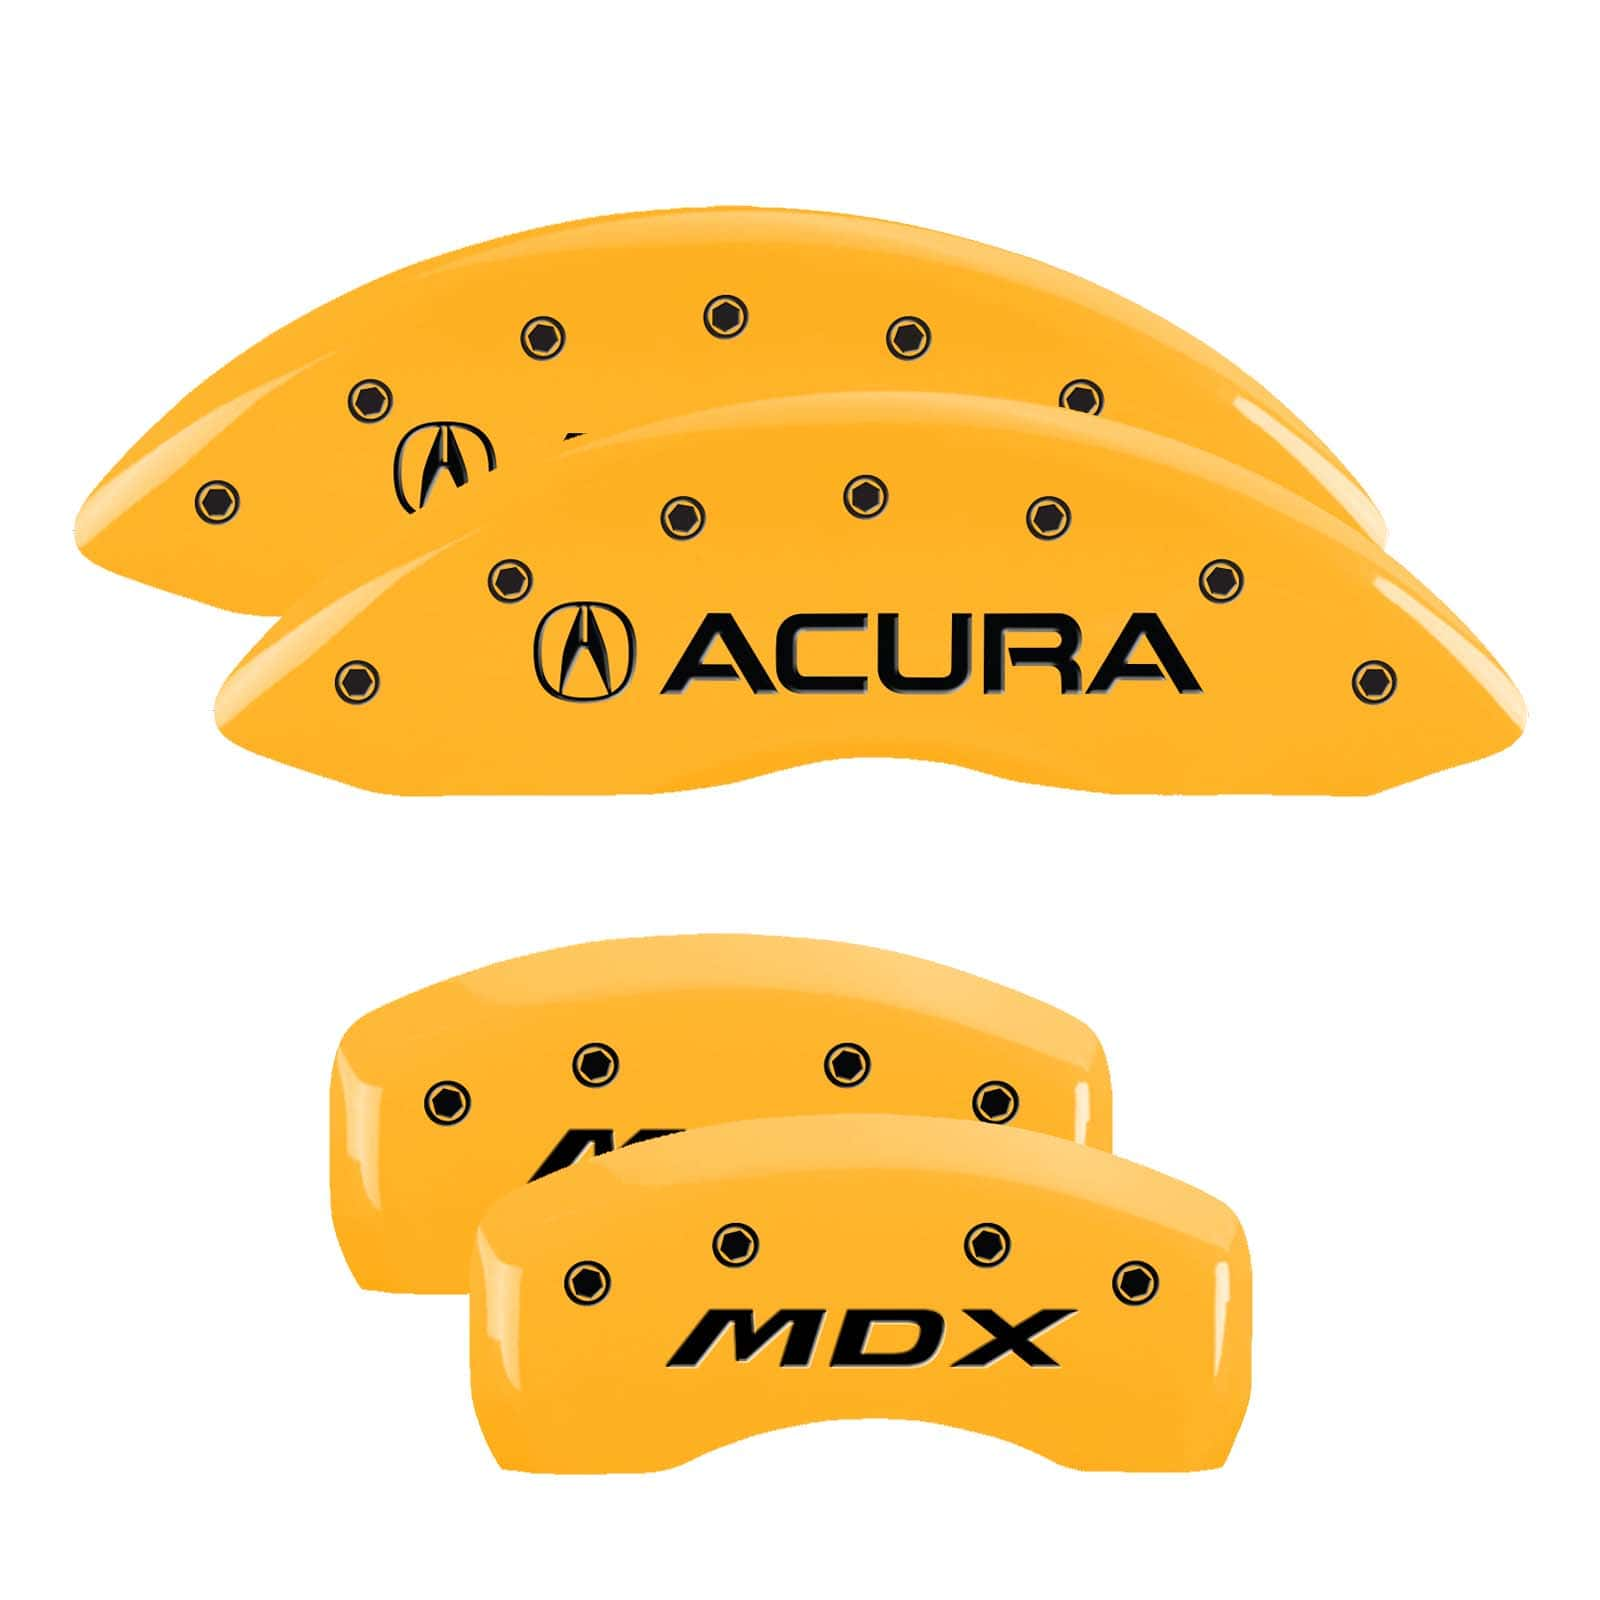 Acura Mdx 2010 For Sale: MGP Caliper Covers For Acura MDX (Yellow)